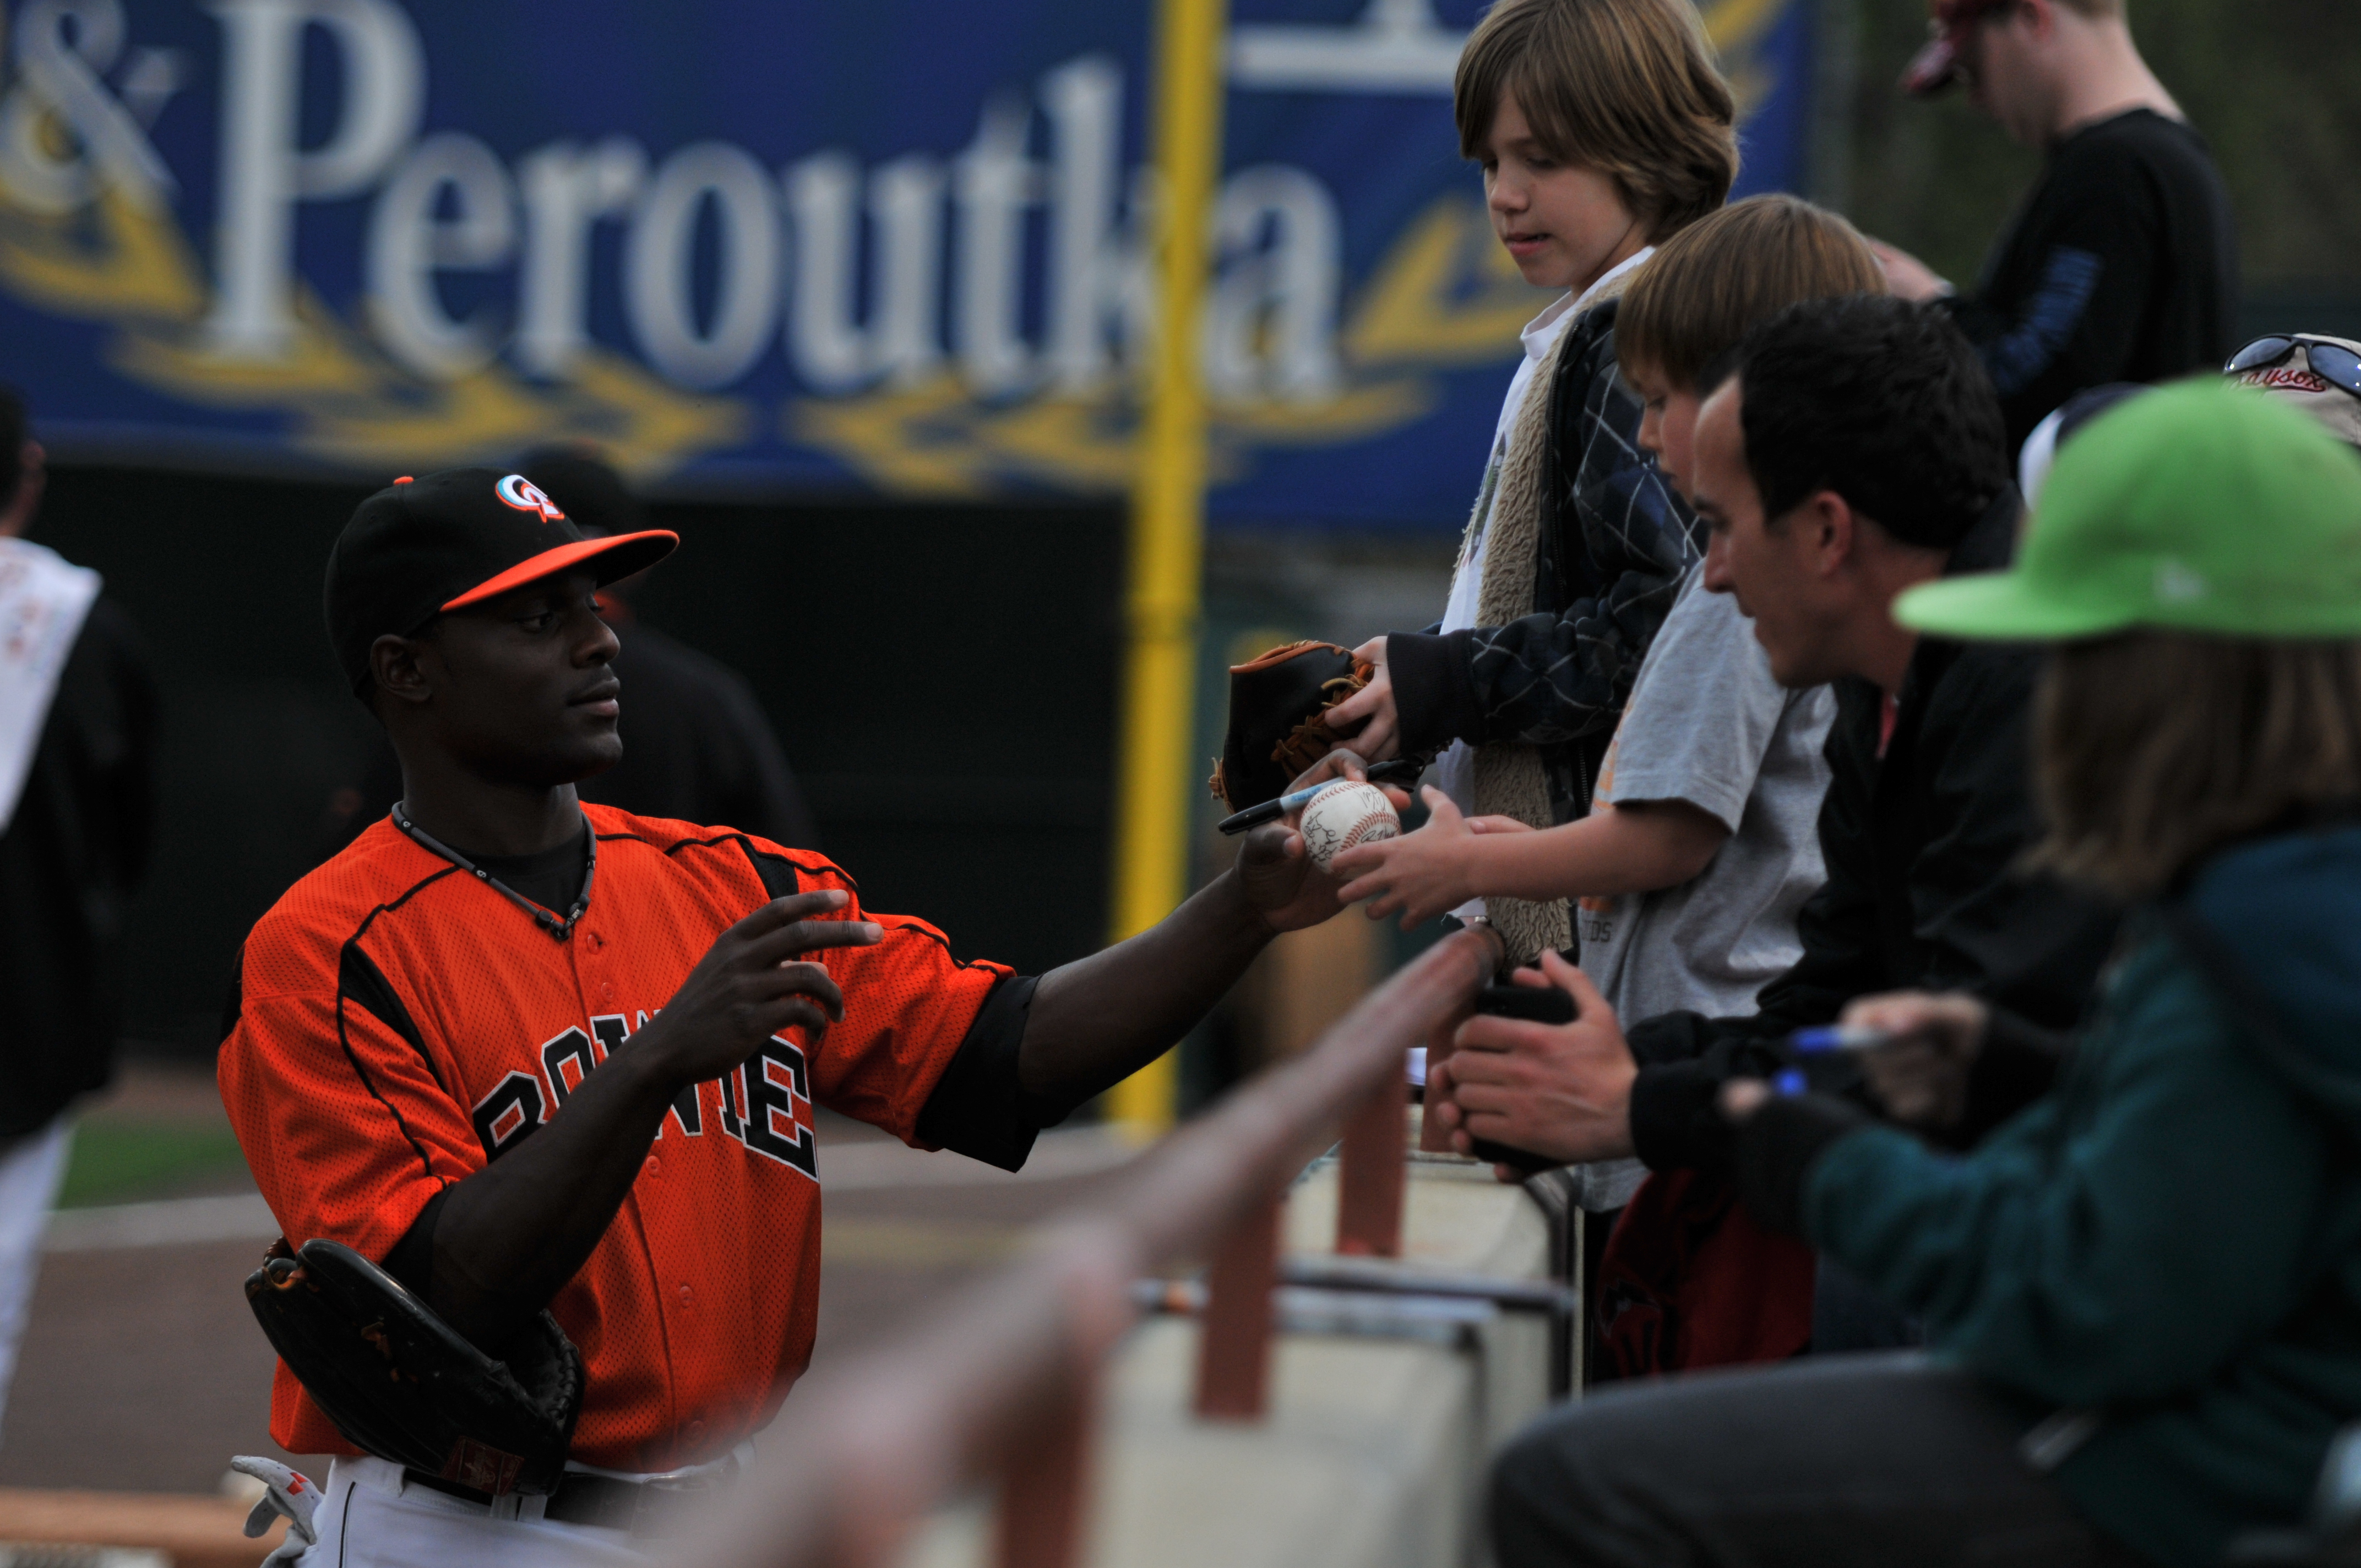 Fans_getting_autographs_from_Bowie_Baysox_player